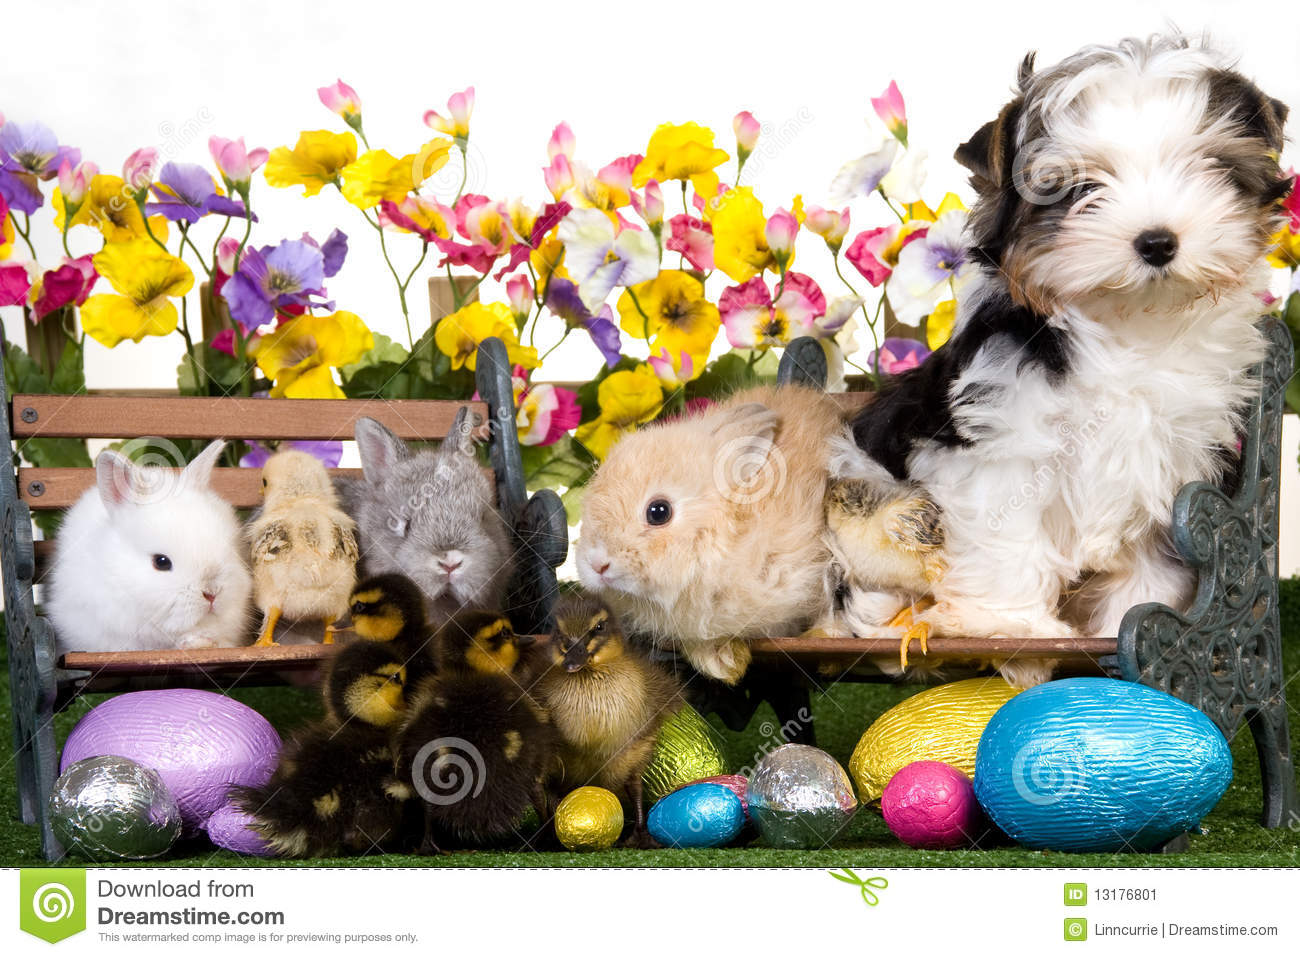 Fish Animation Wallpaper Free Download Pets With Easter Eggs On White Background Stock Image